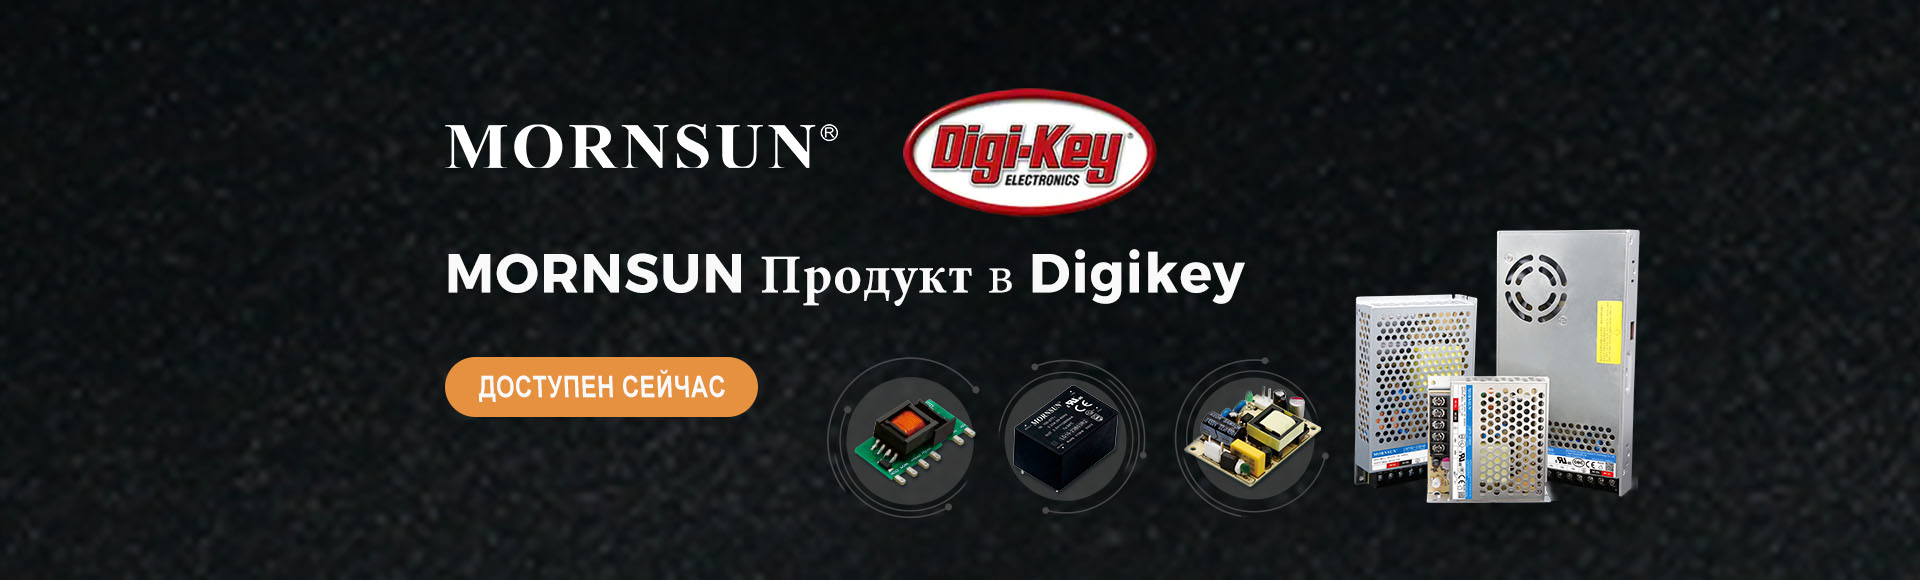 MORNSUN Announces Authorized Agreement with Digi-Key to Provide immediate delivery services to Customers Worldwide